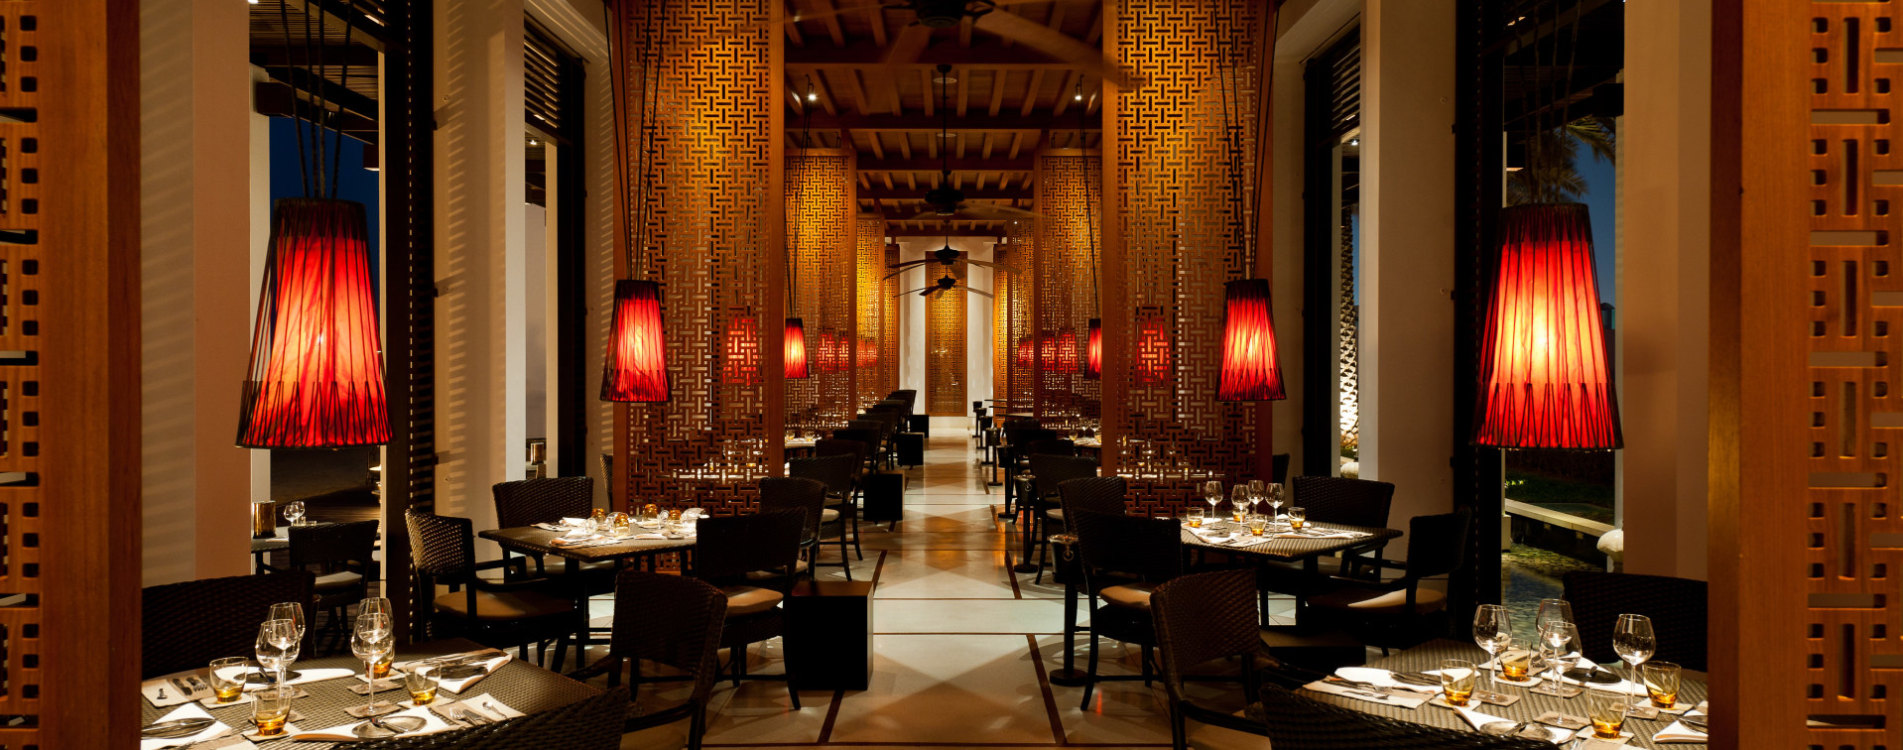 The-Chedi-Muscat-Dining-The Beach-Restaurant-Interior-Oman.jpg